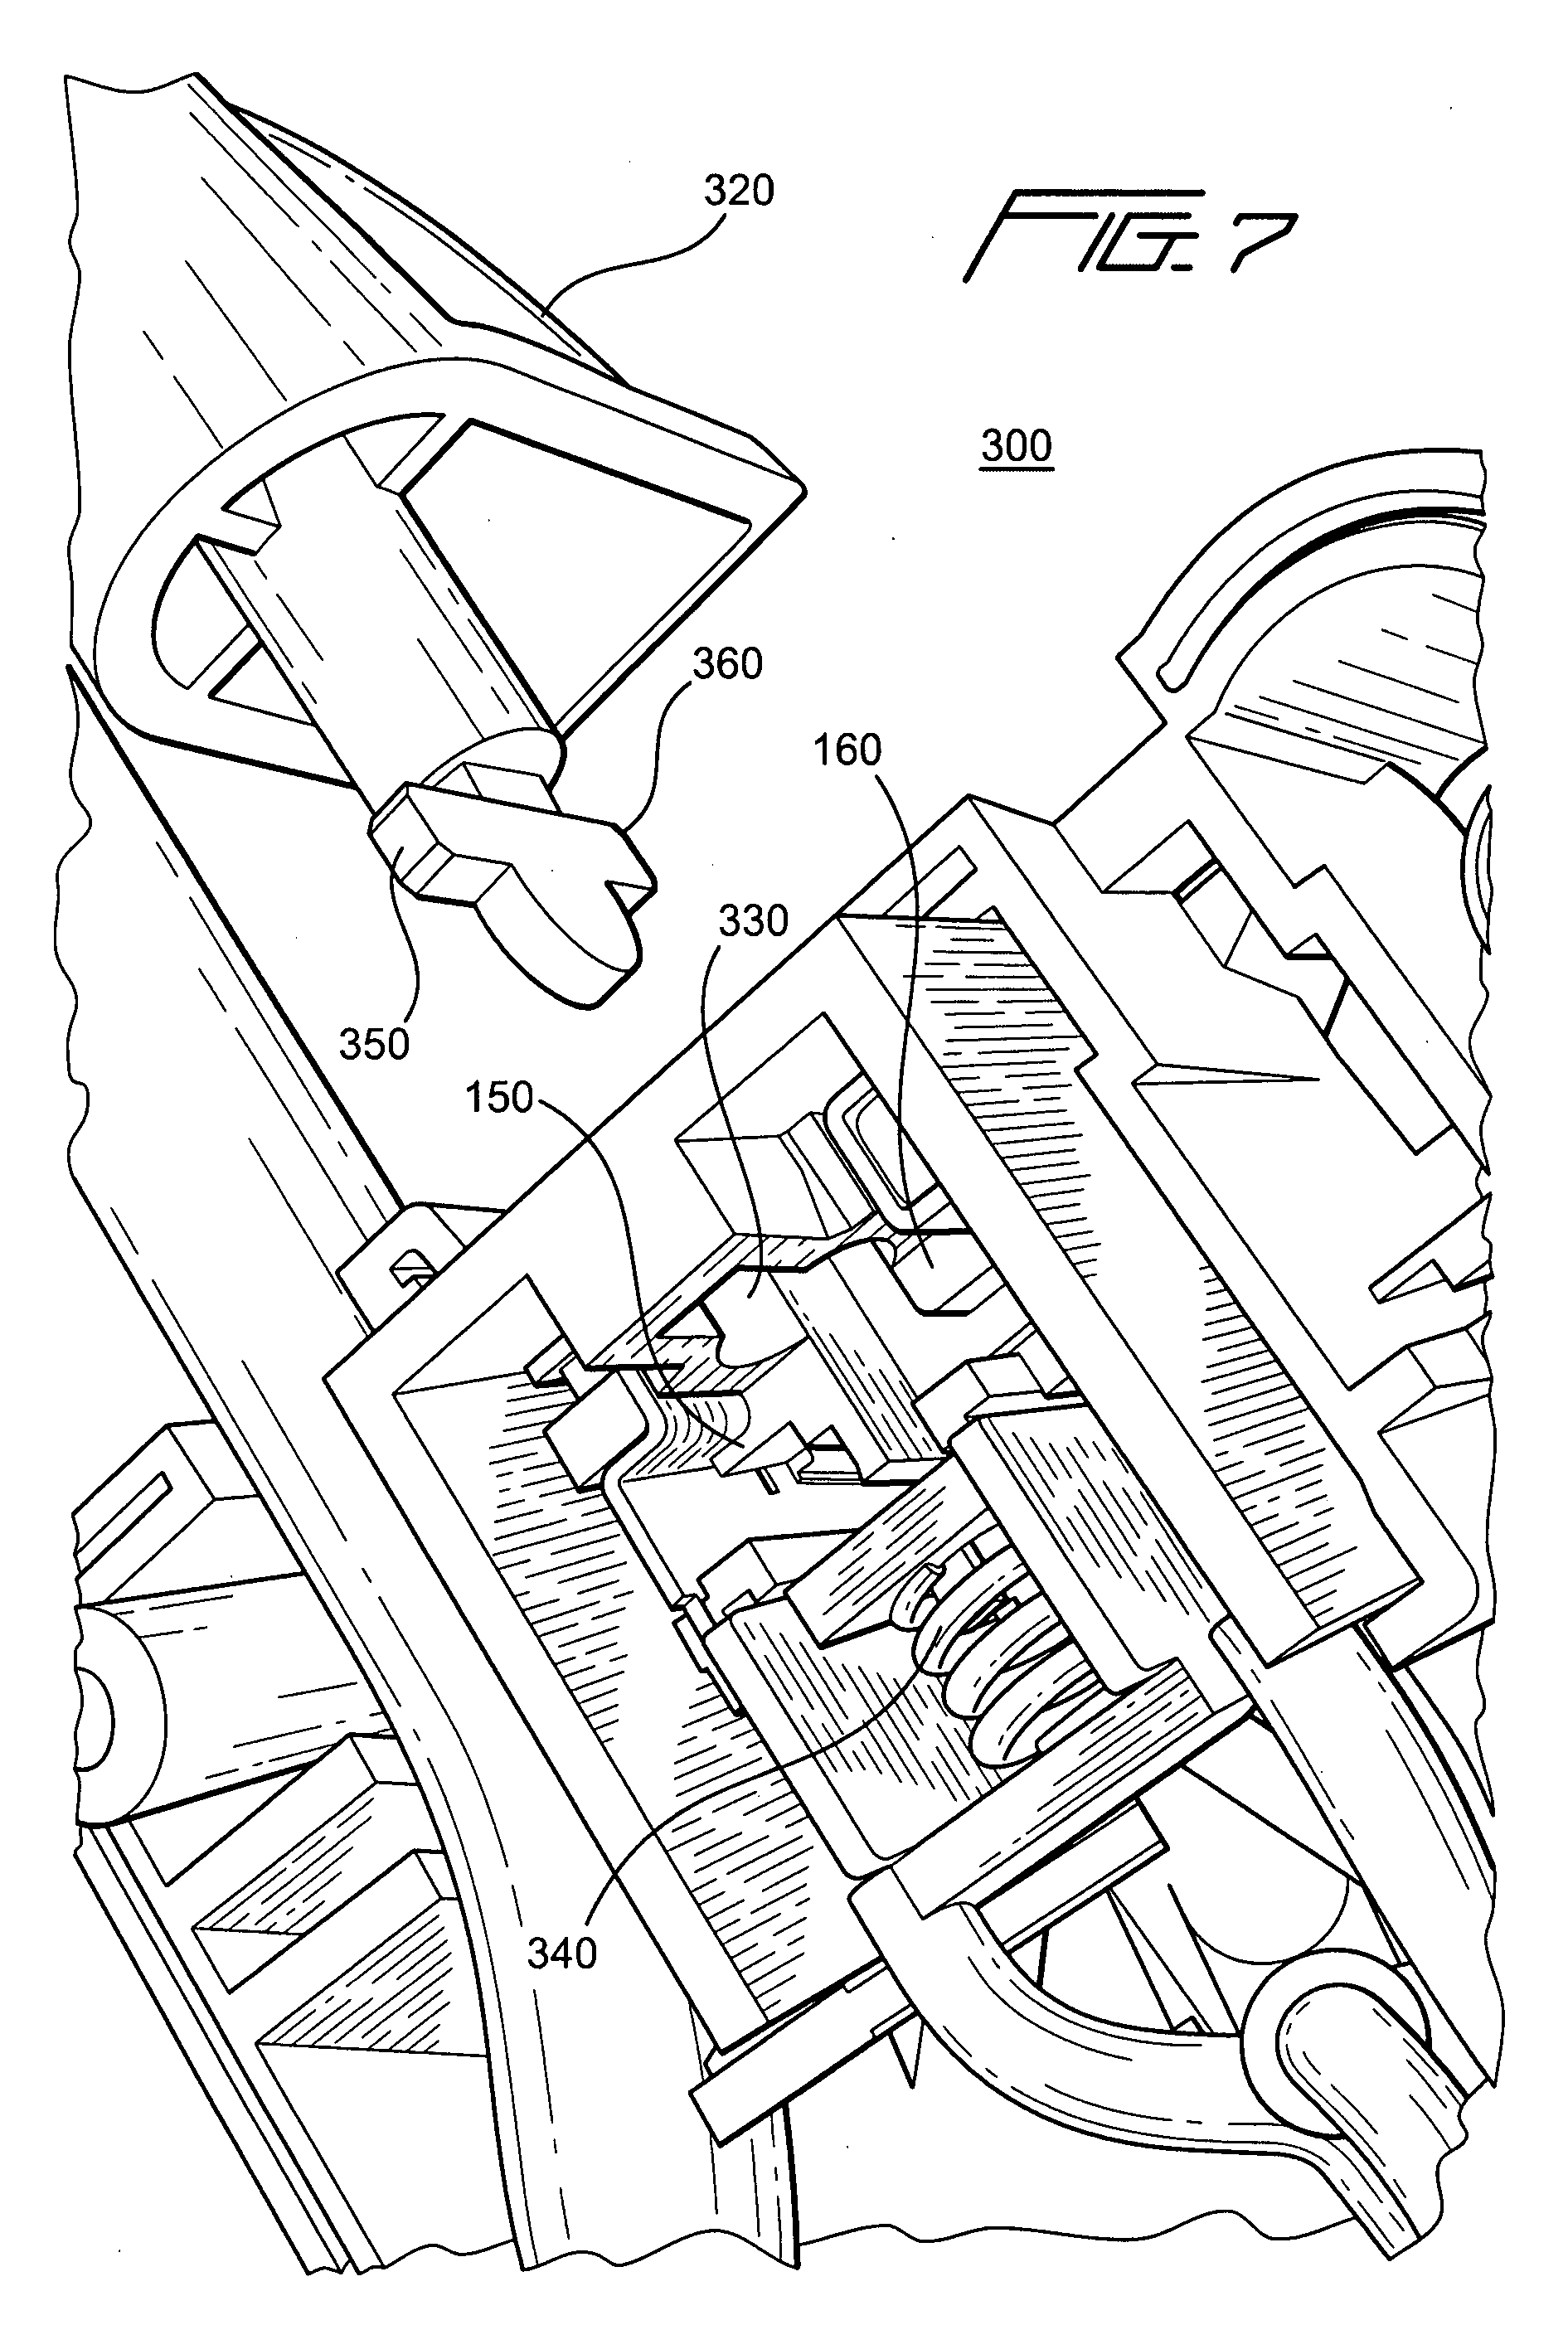 us20080223012 cordless electric mower fail safe Ice Cube Relay Wiring Diagram patent drawing